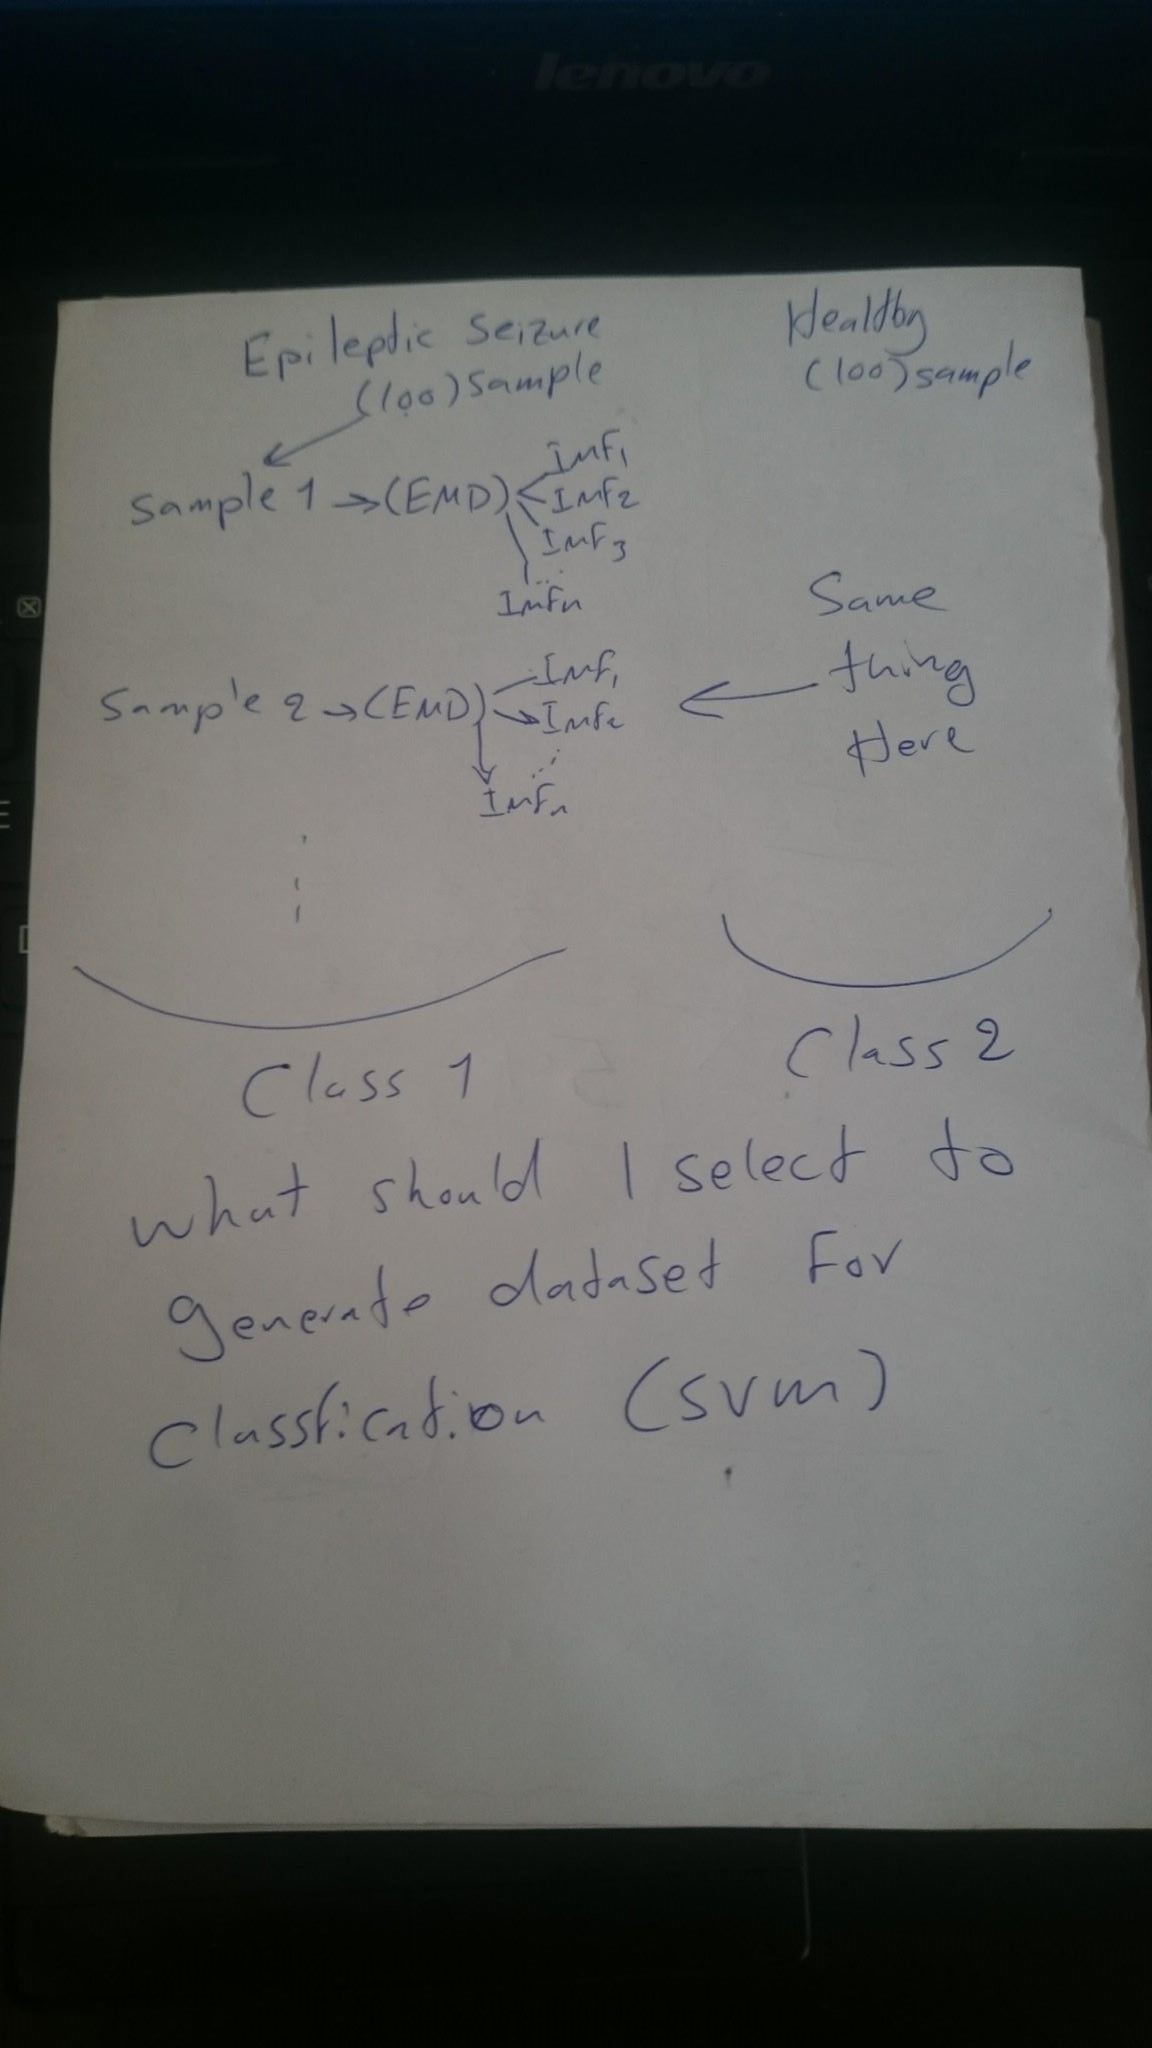 what should i select to generate data set for classification eeg